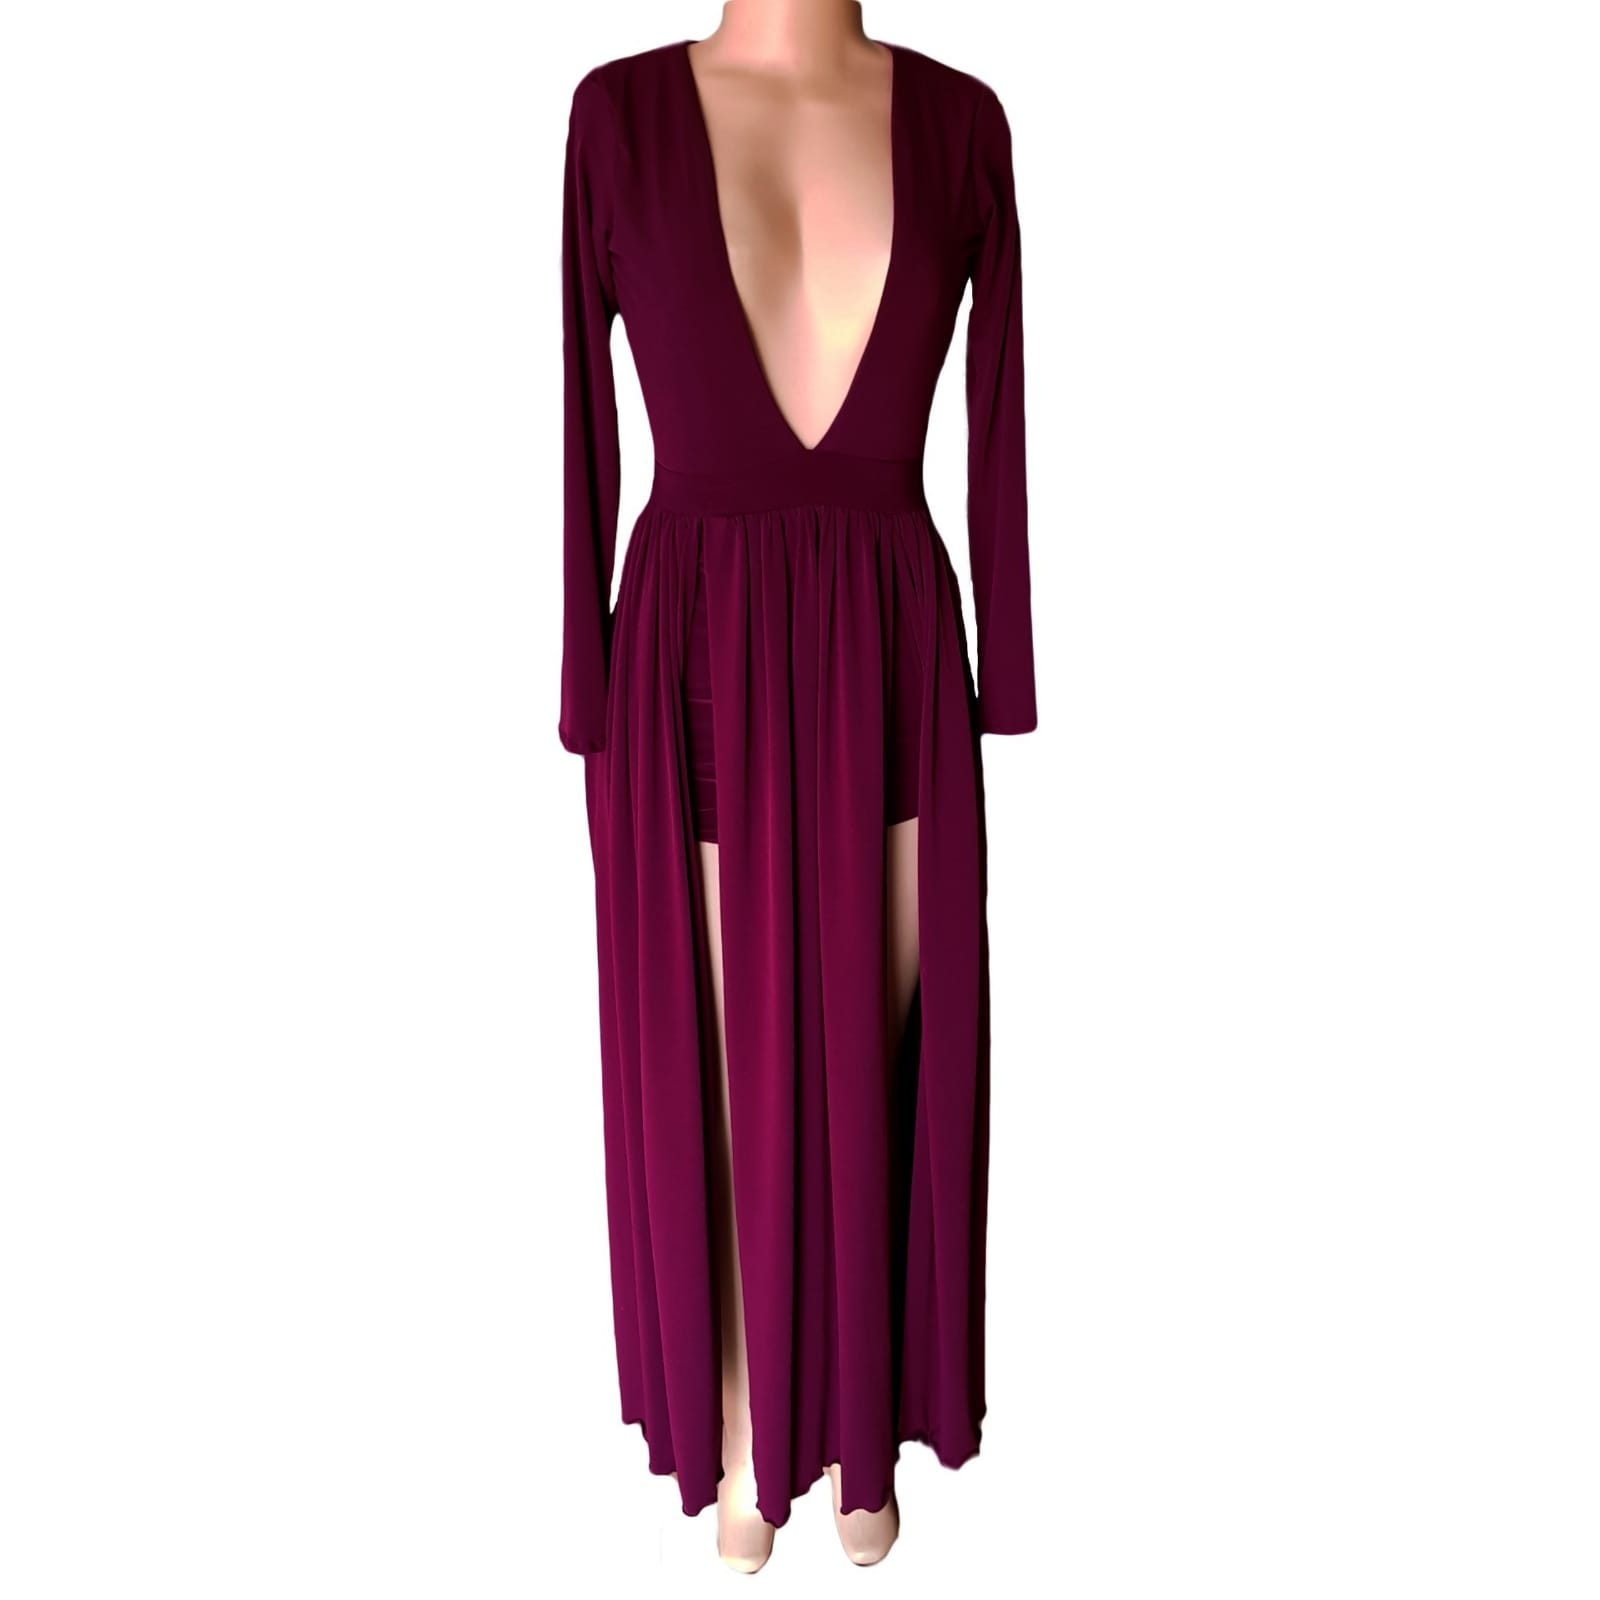 Plum flowy plunging neckline prom dress 4 plum flowy plunging neckline prom dress with long sleeves & 2 high slits and a train with matching shorts.